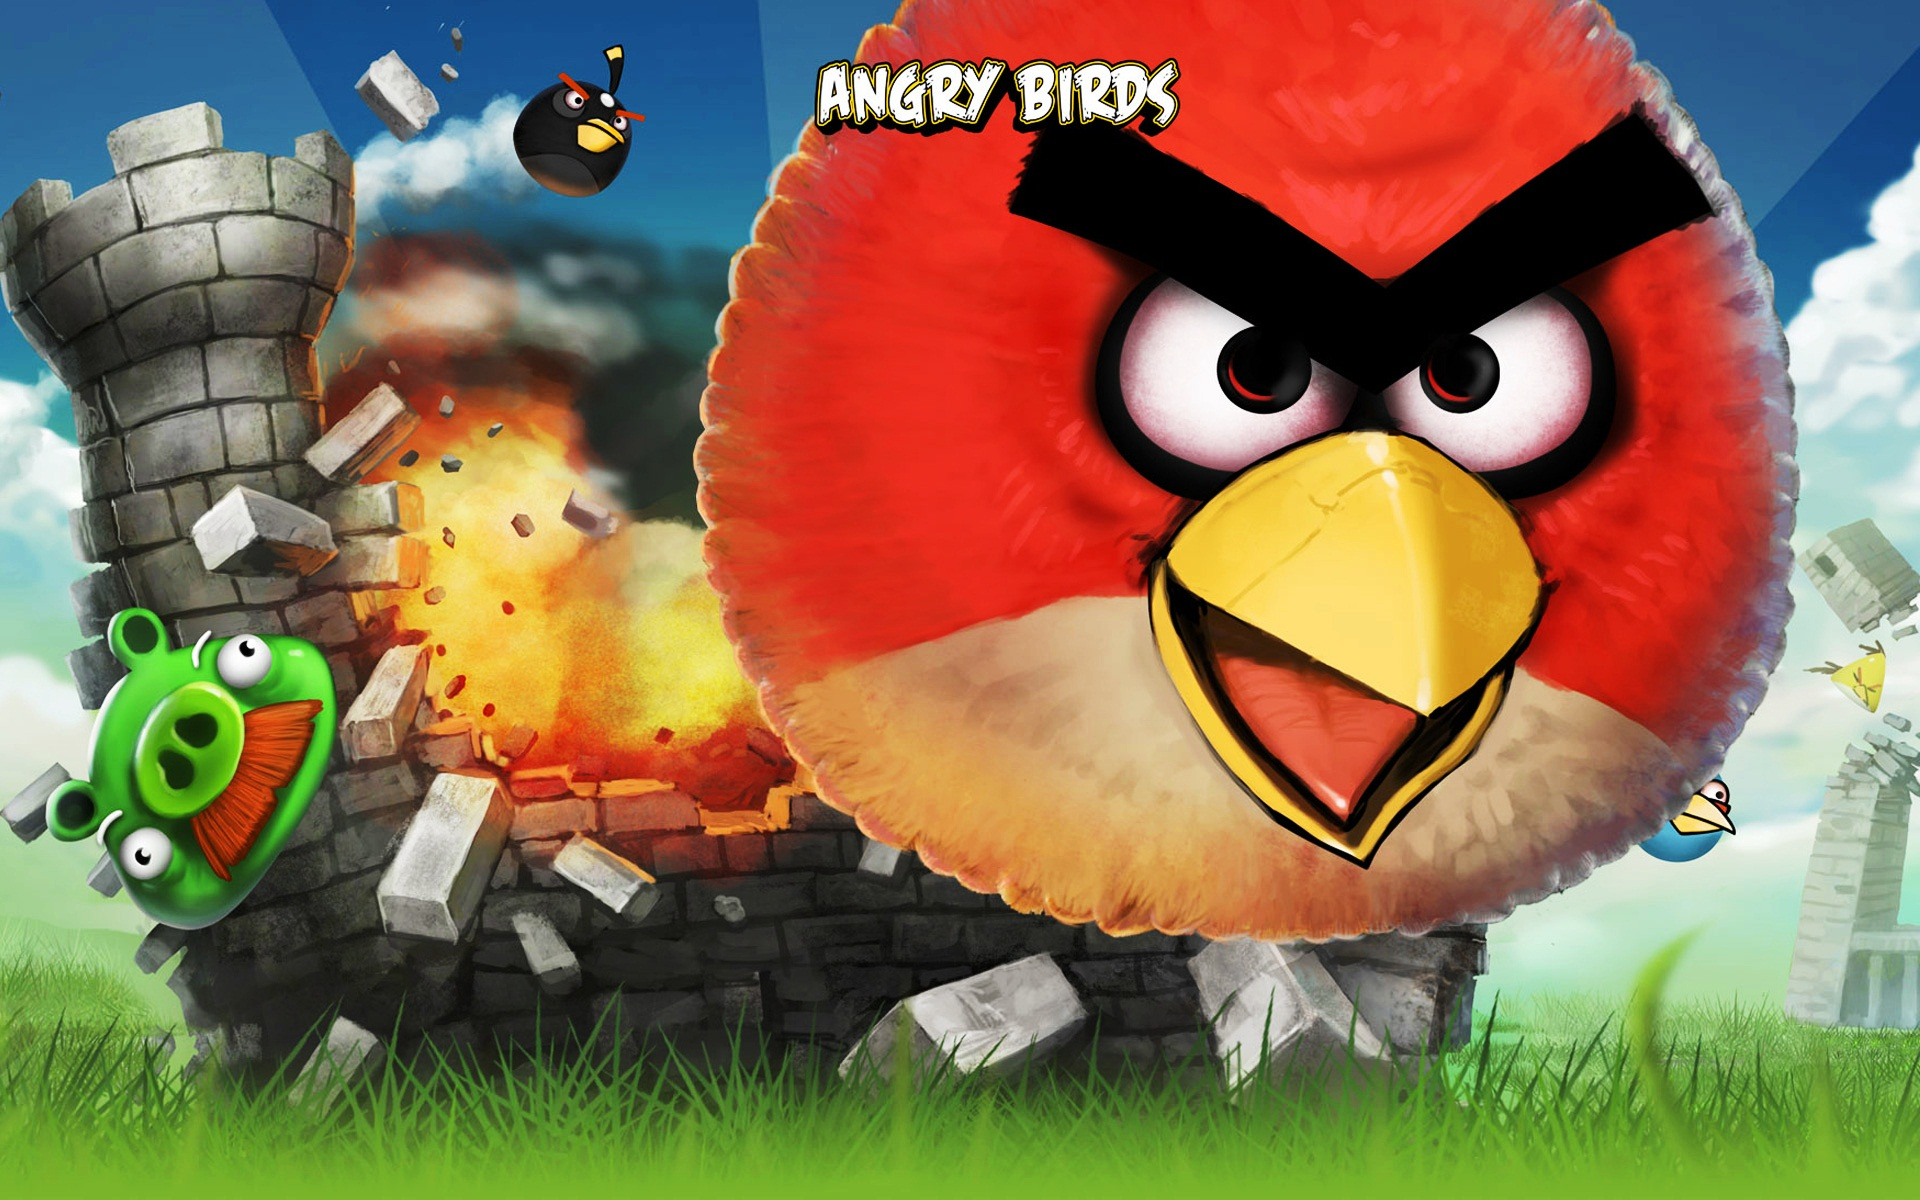 Best Angry Bird Wallpaper for Desktop